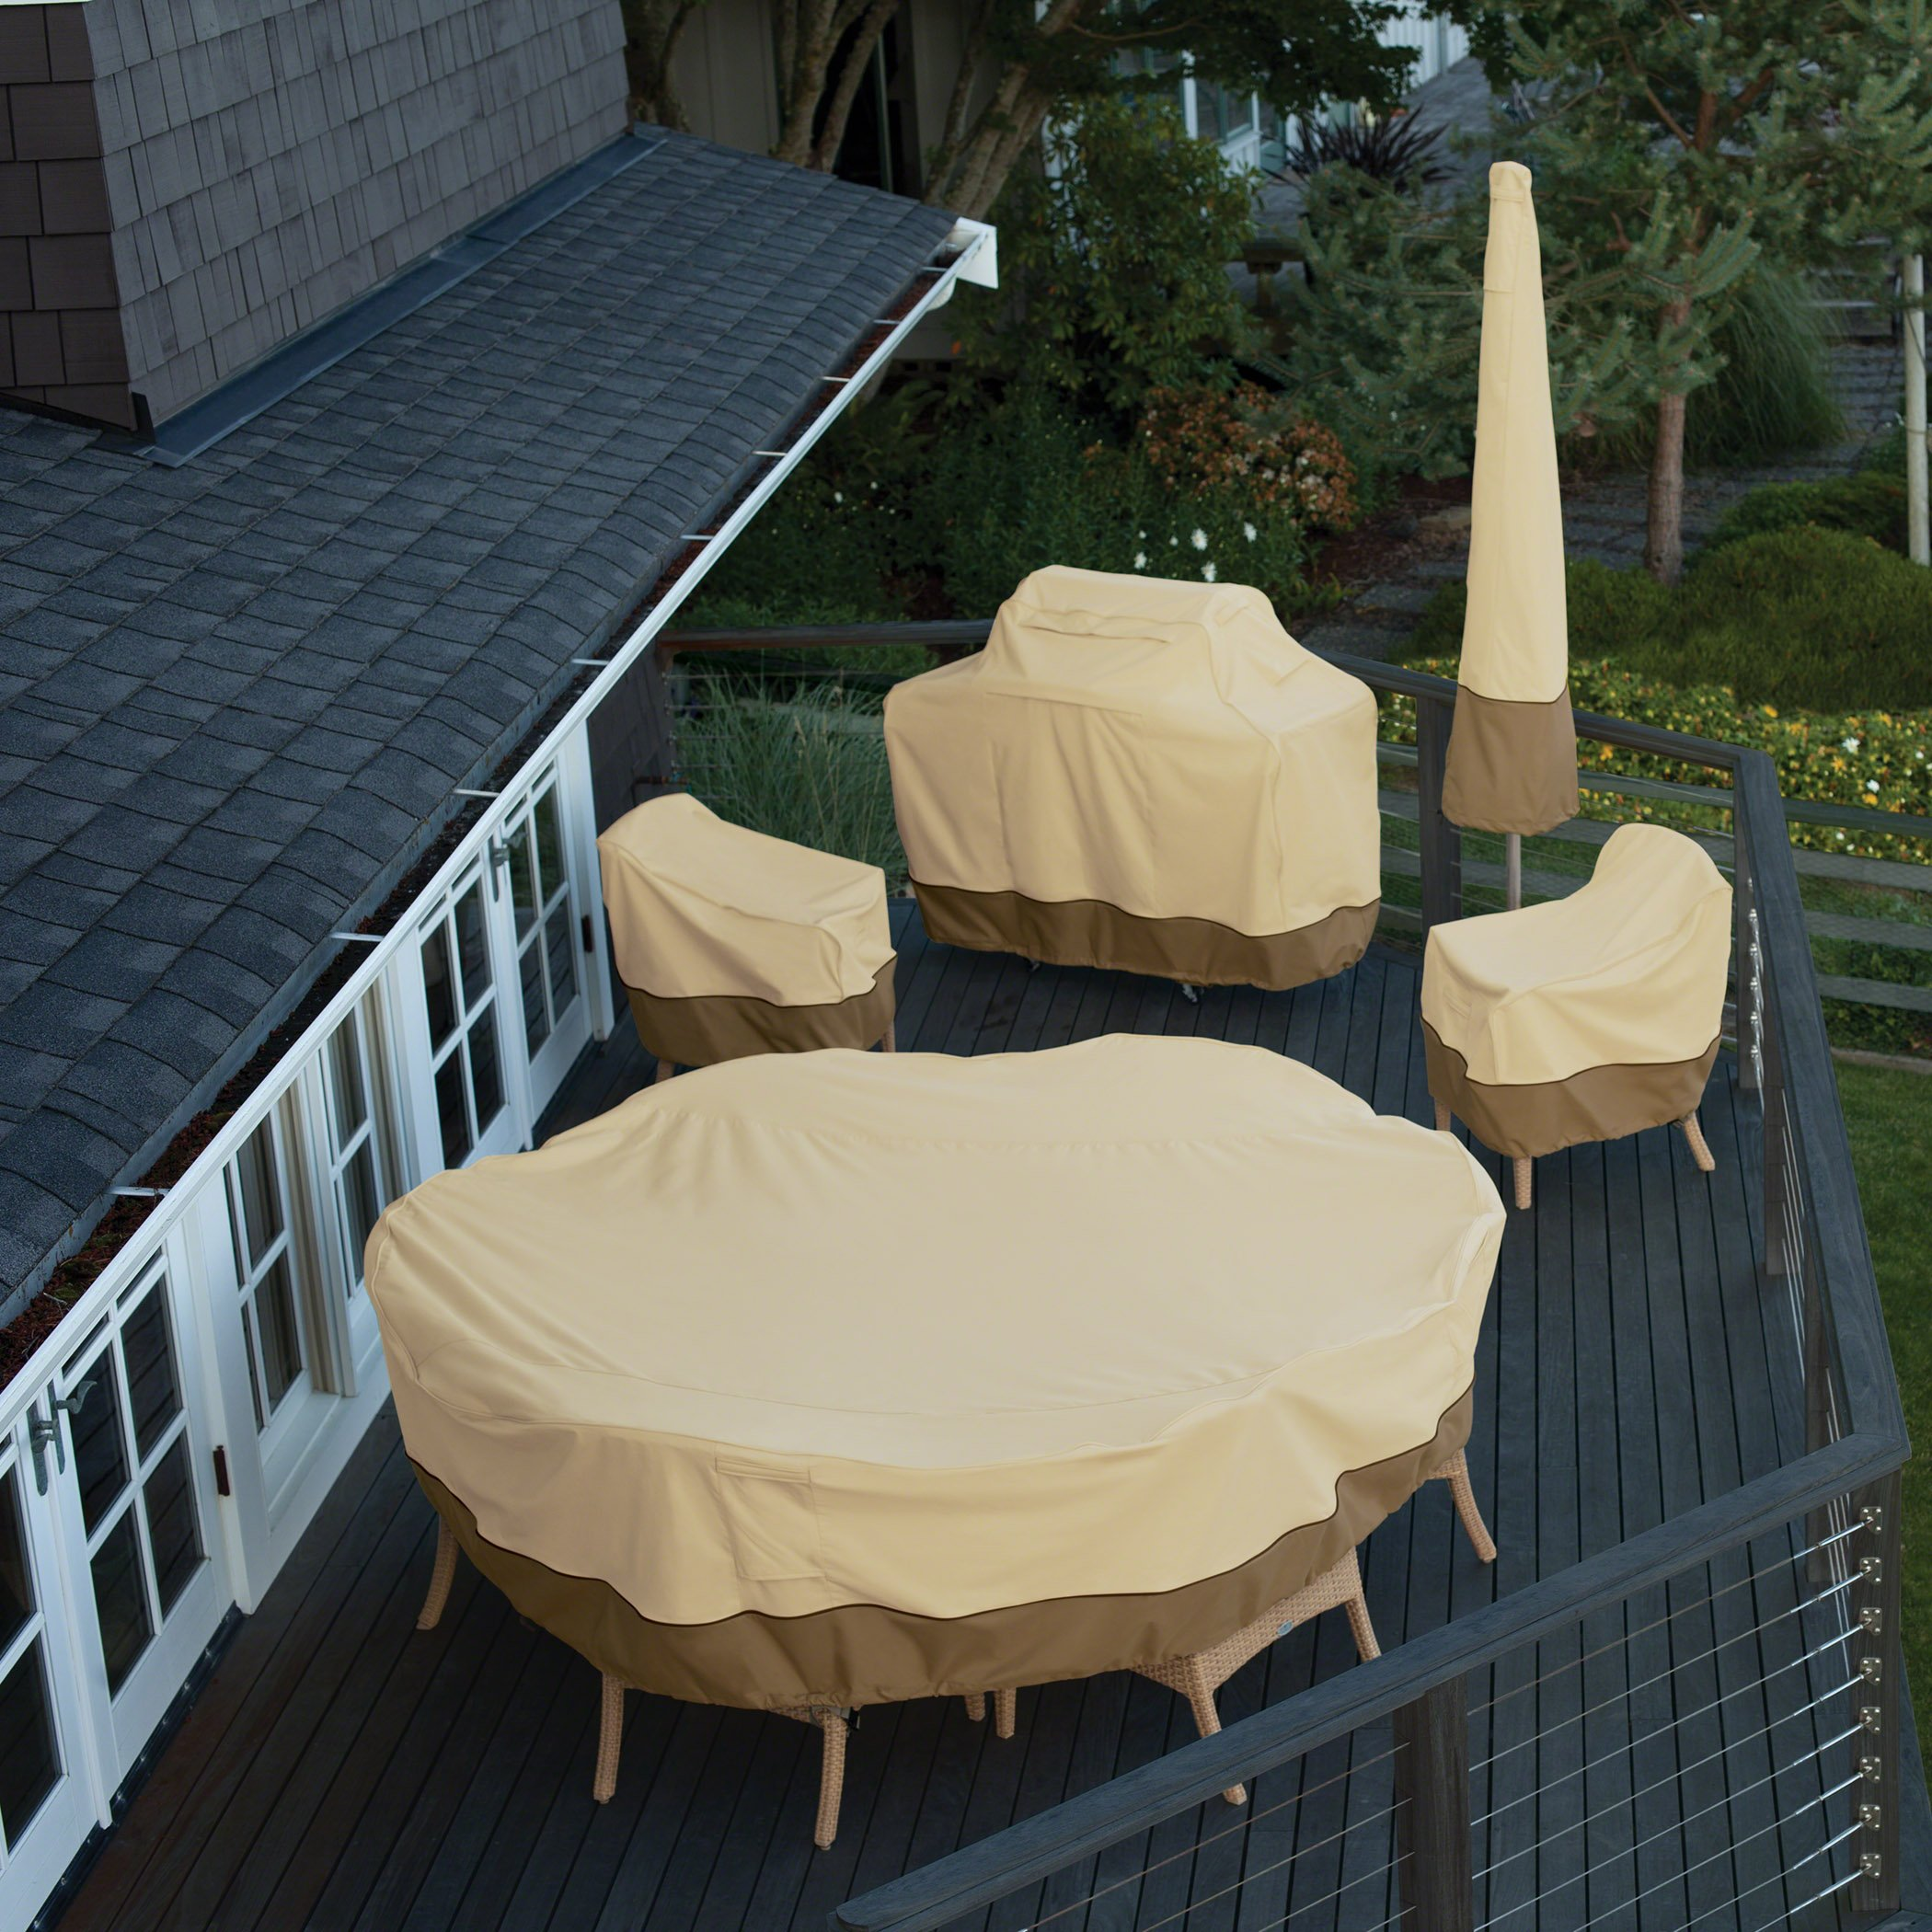 Classic Accessories Veranda Tall Round Patio Table & Chairs Cover, Large by Classic Accessories (Image #3)